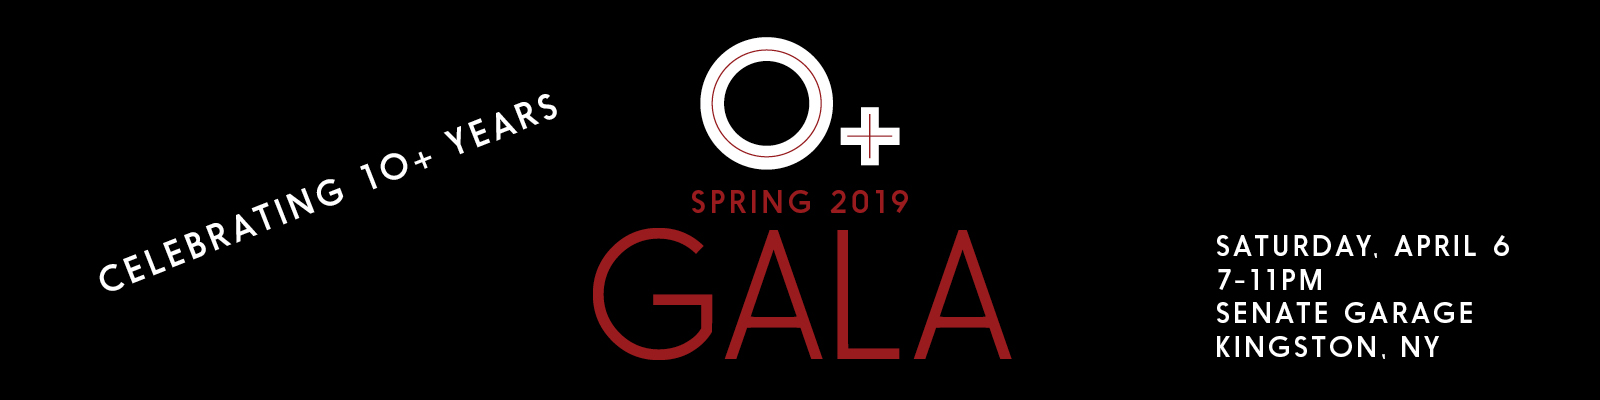 To buy tickets to attend the Galal or bid on items available for the silent auction to support O+, including Grey Room in June by Lindsey Wolkowicz, please visit:  https://e.givesmart.com/events/7Xy/   To learn more about the O+ Festival in Kingston, NY and beyond visit:  https://opositivefestival.org/